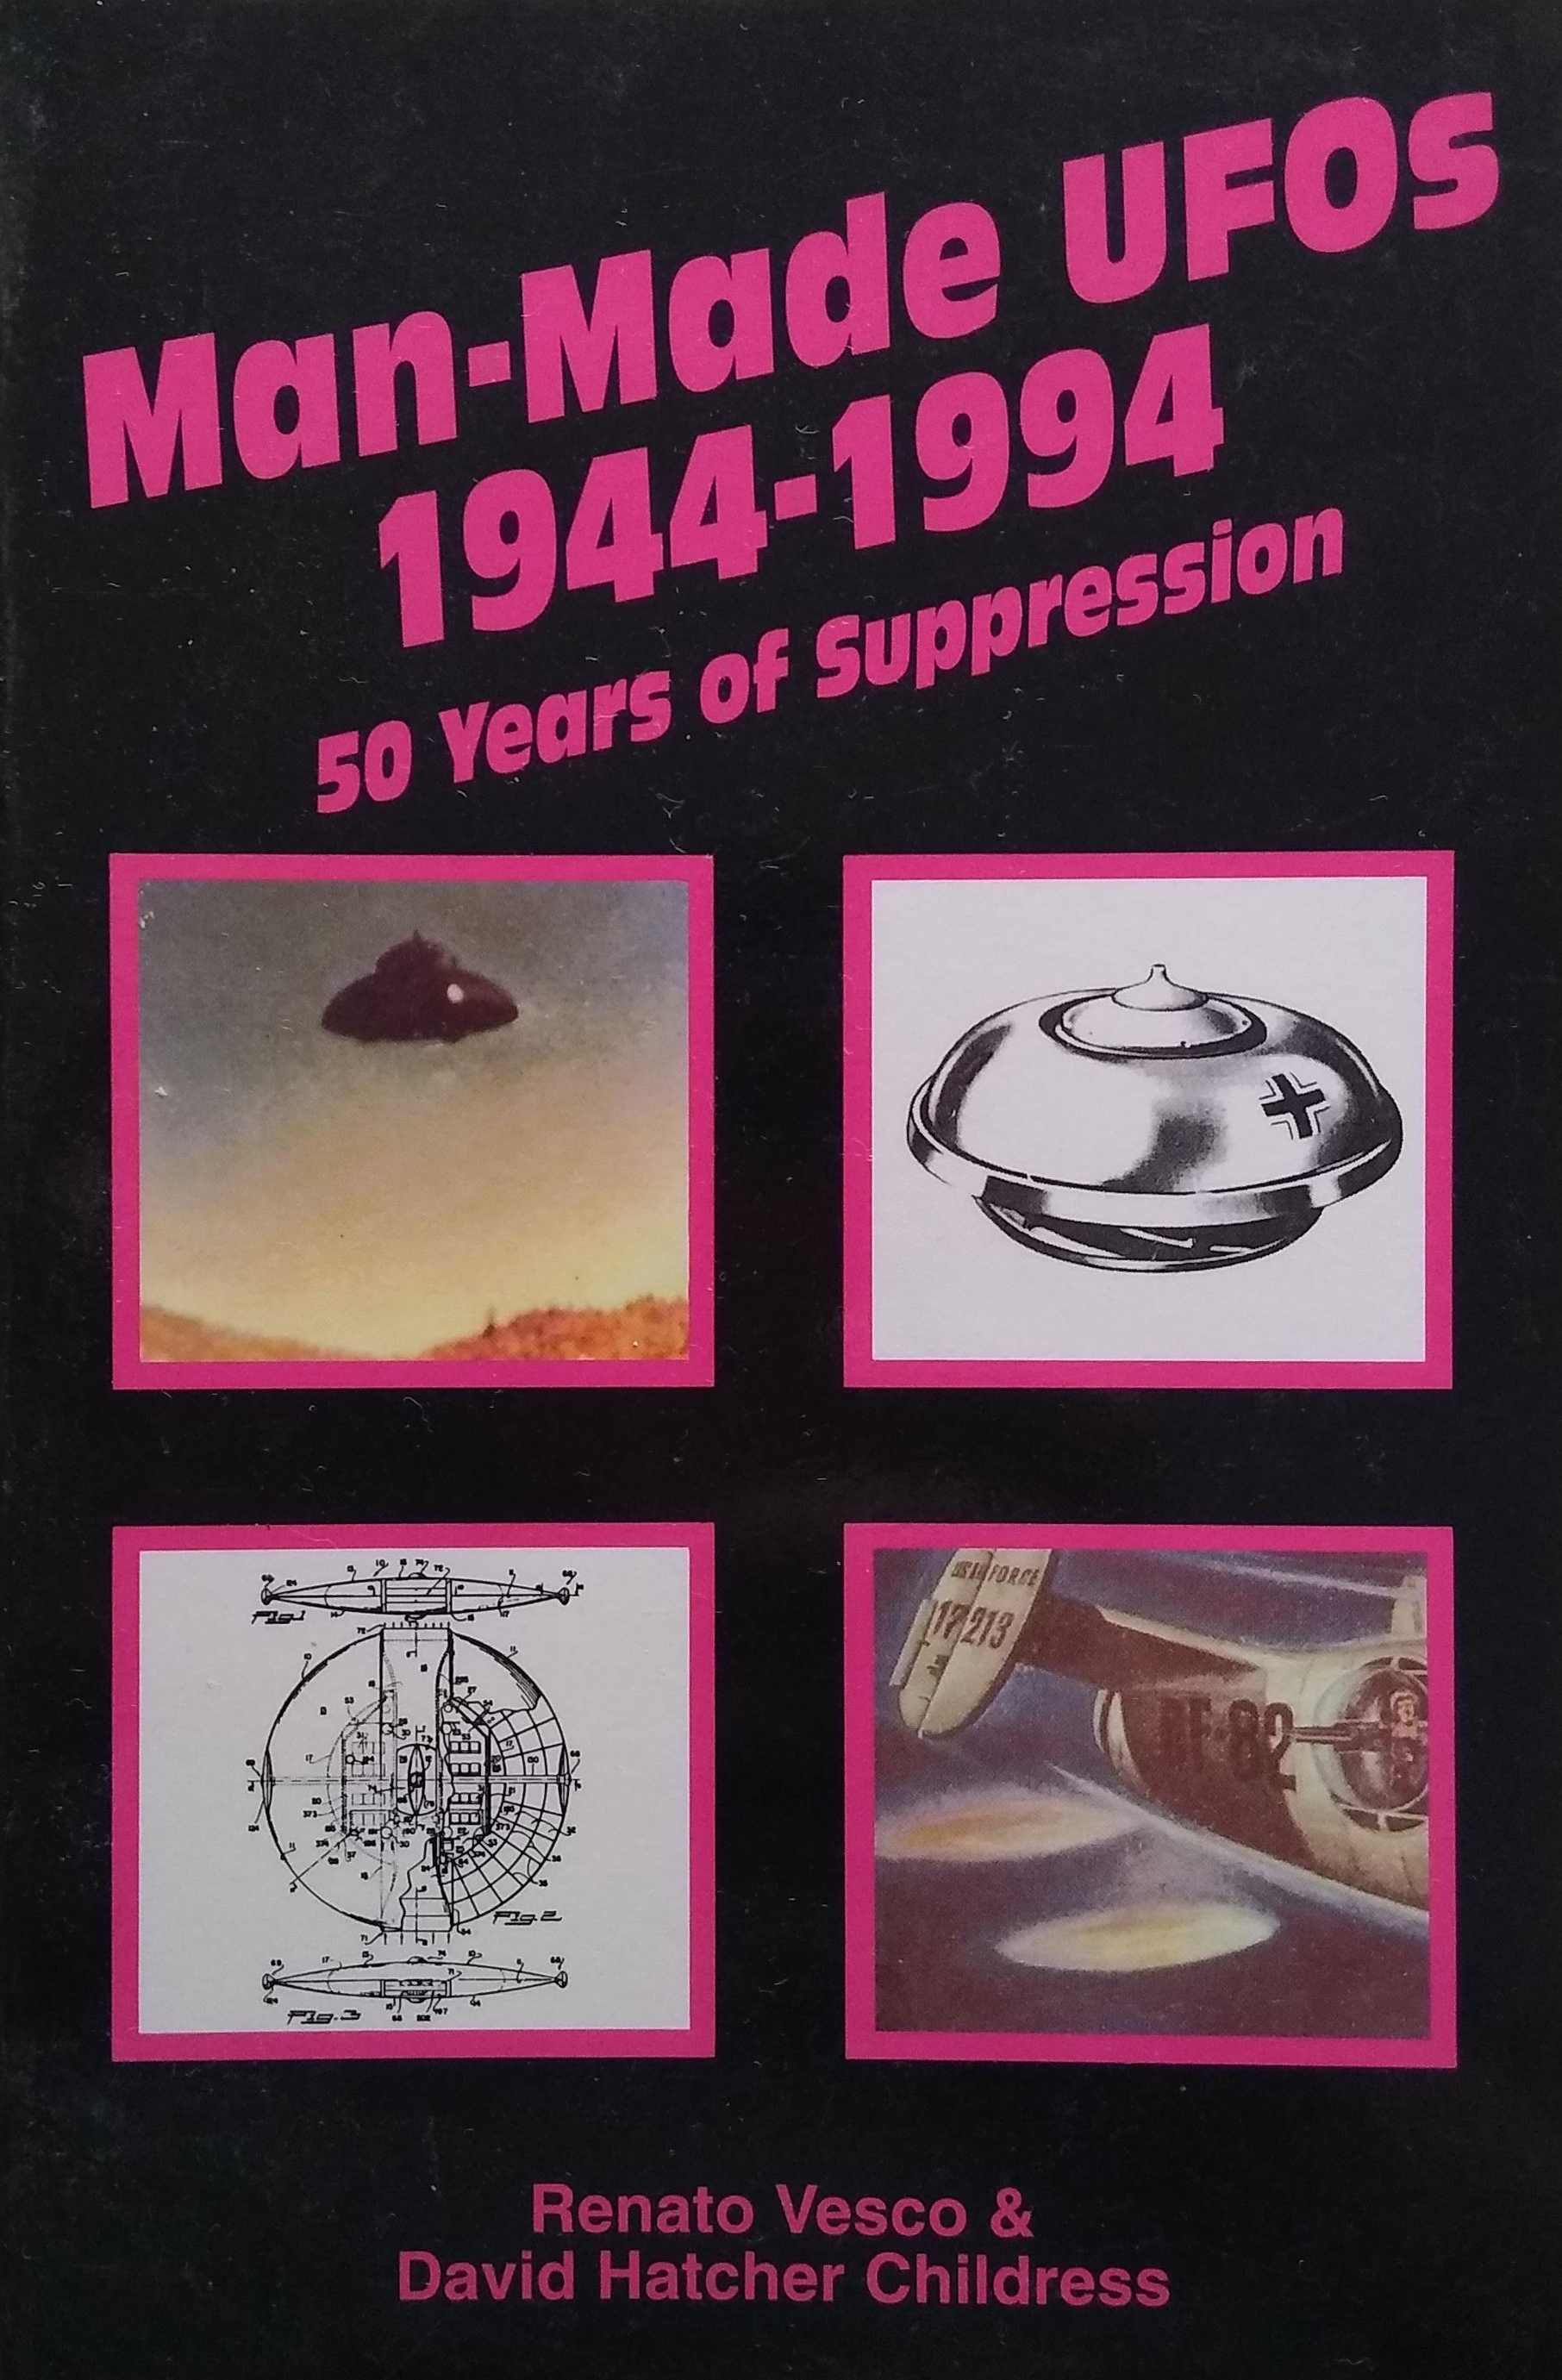 Man-Made UFOs 1944-1994